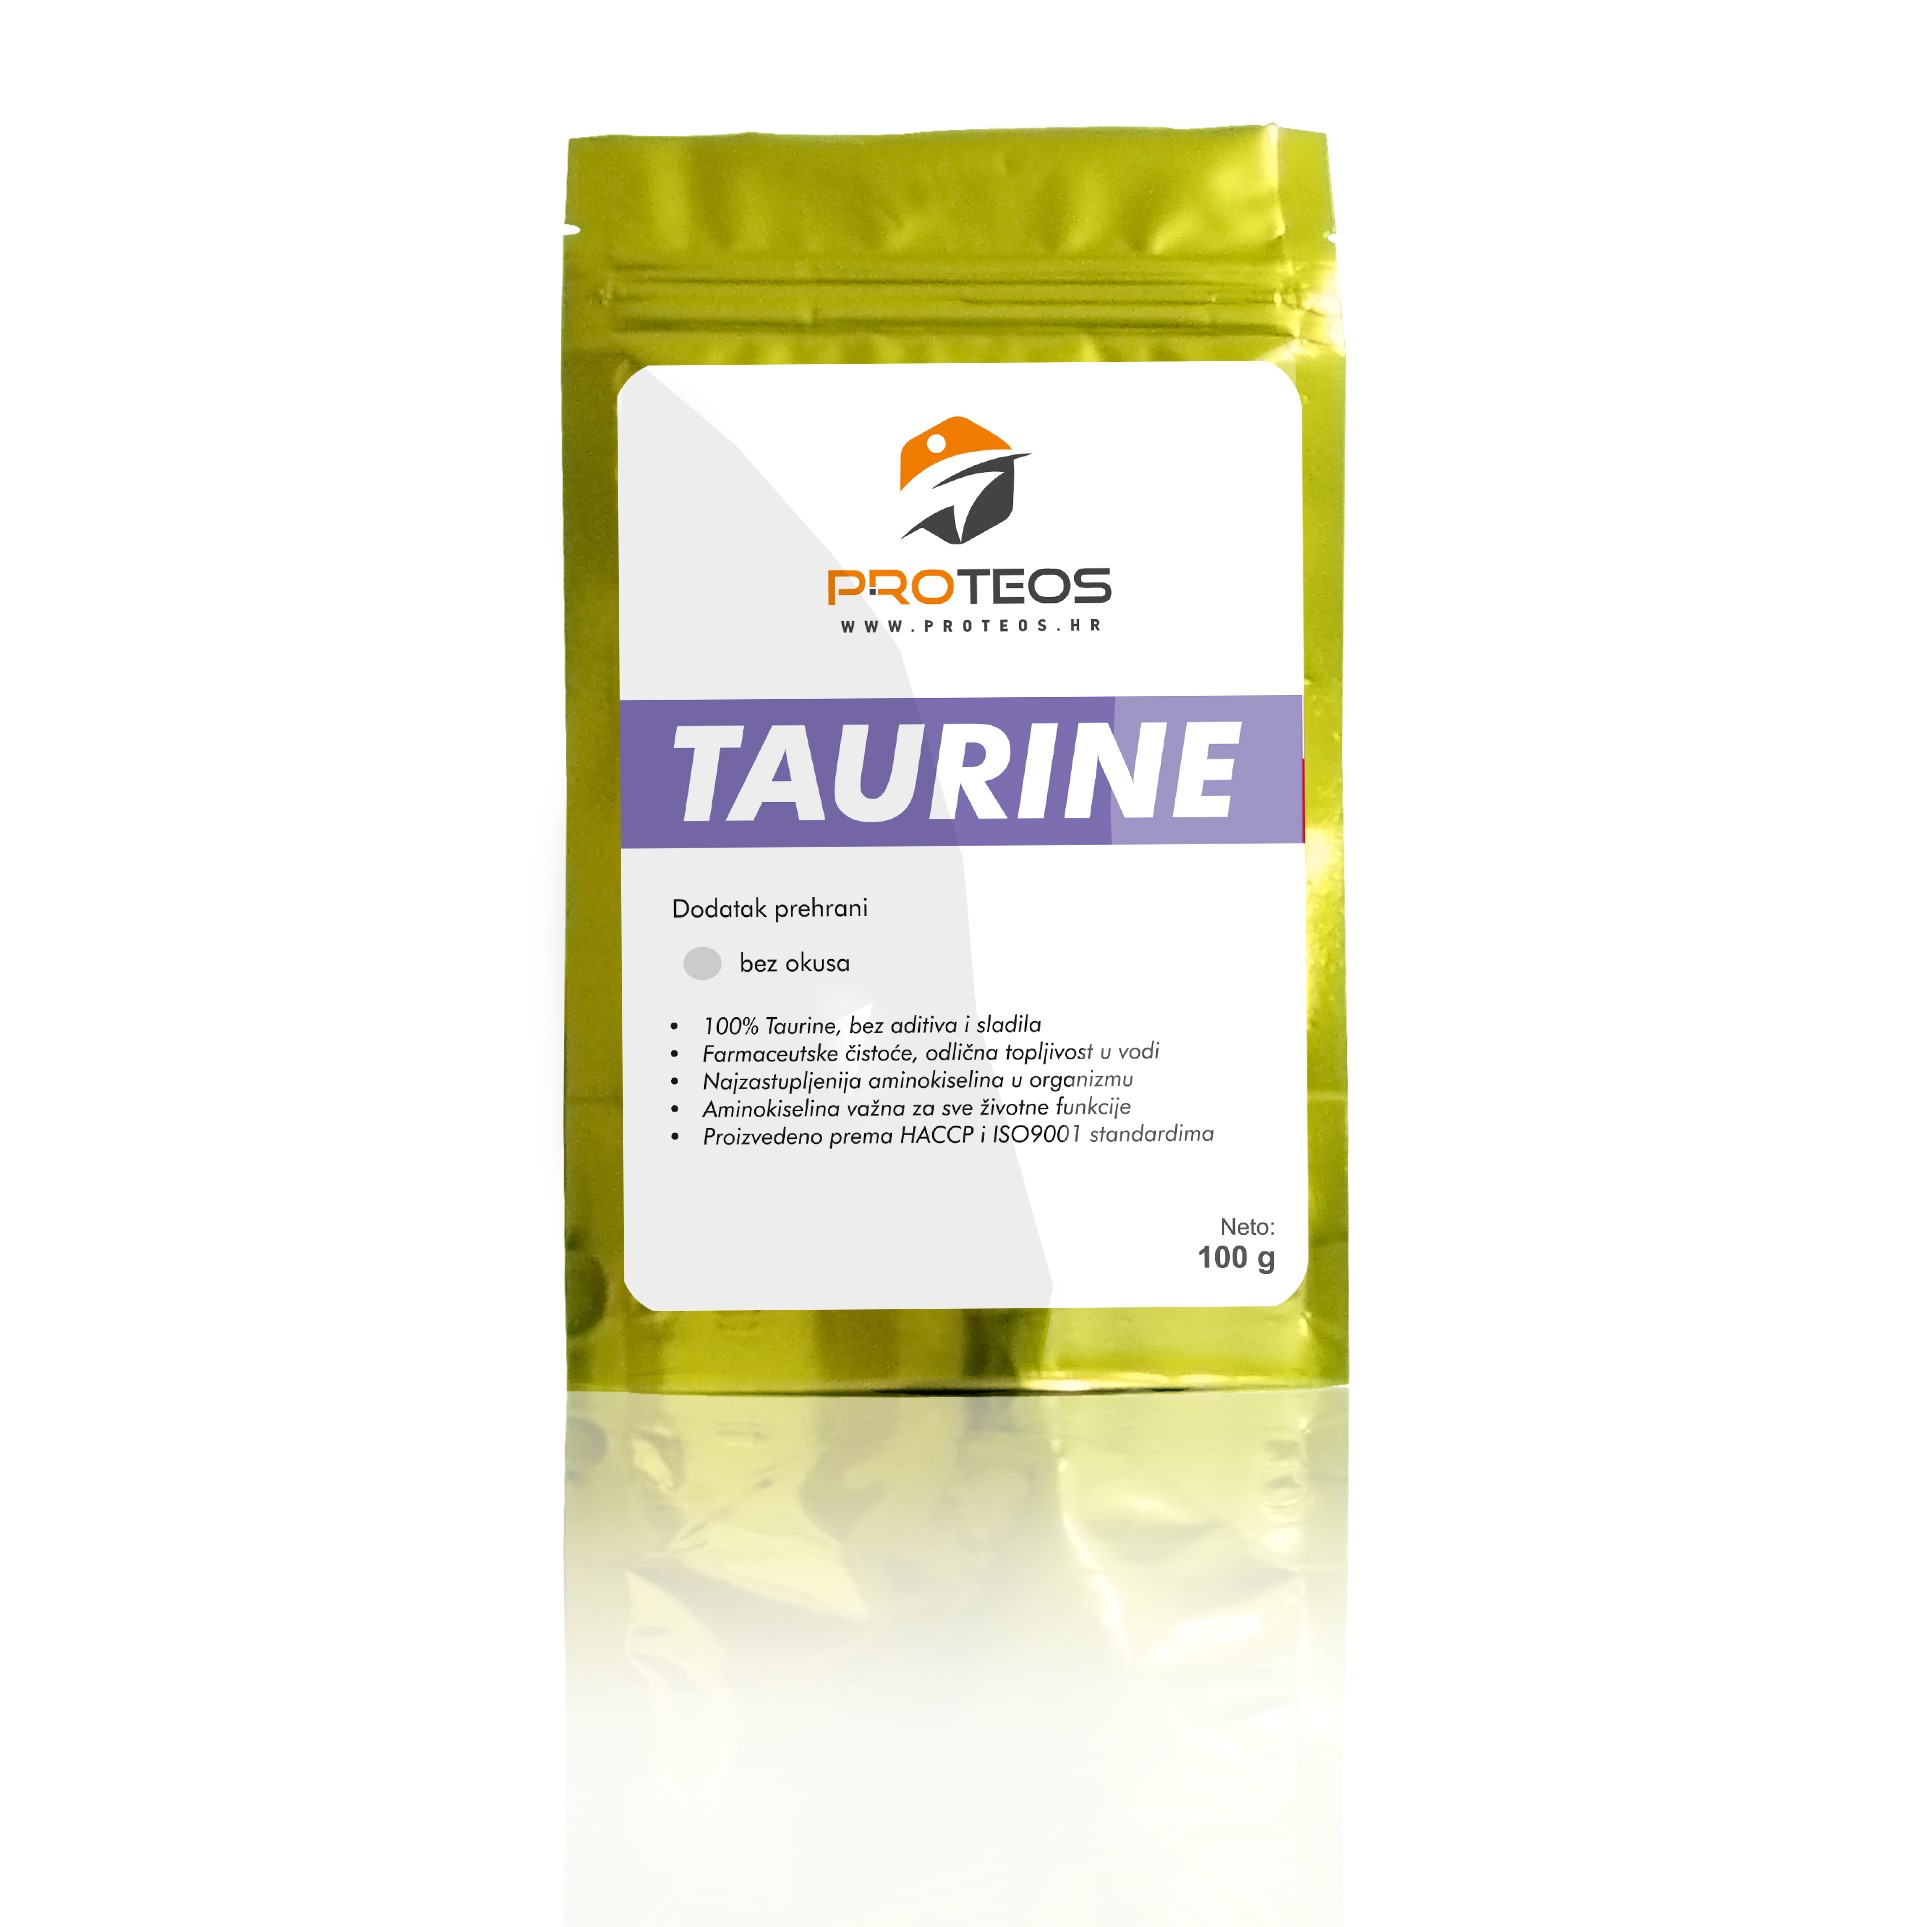 TAURINE 100g PROTEOS